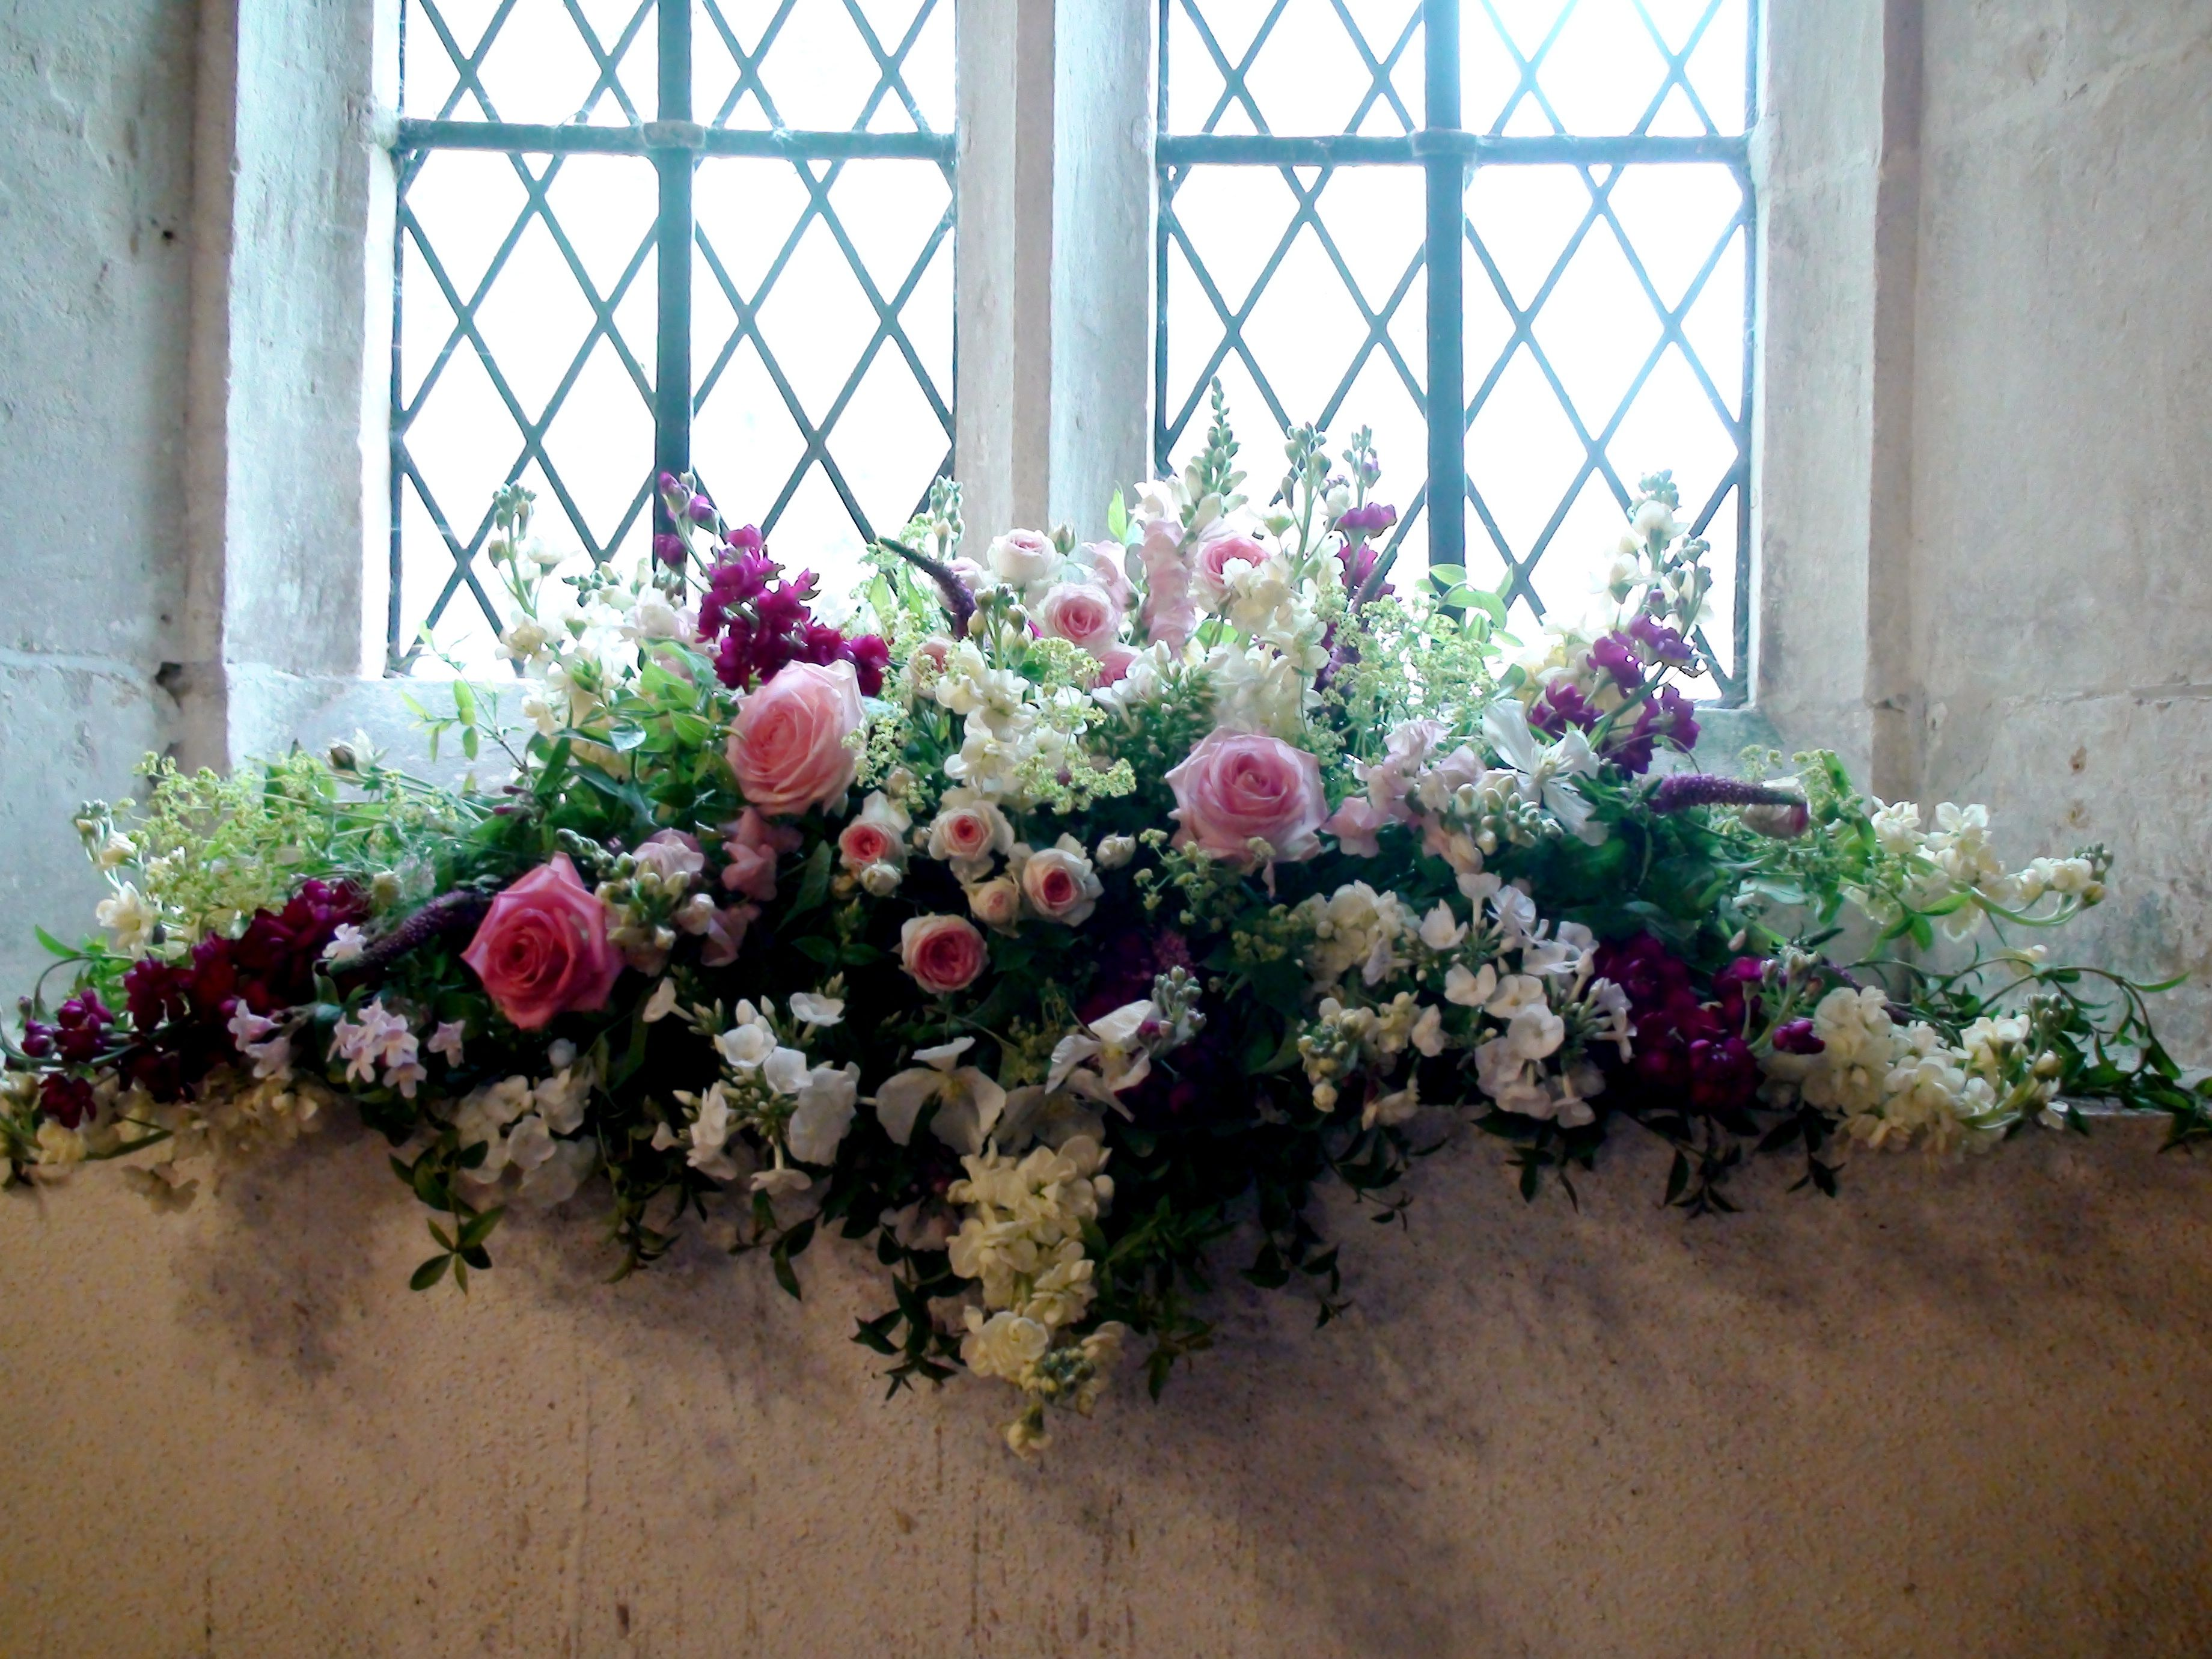 A Pretty Arrangement For A Church Windowsill With Roses Stocks